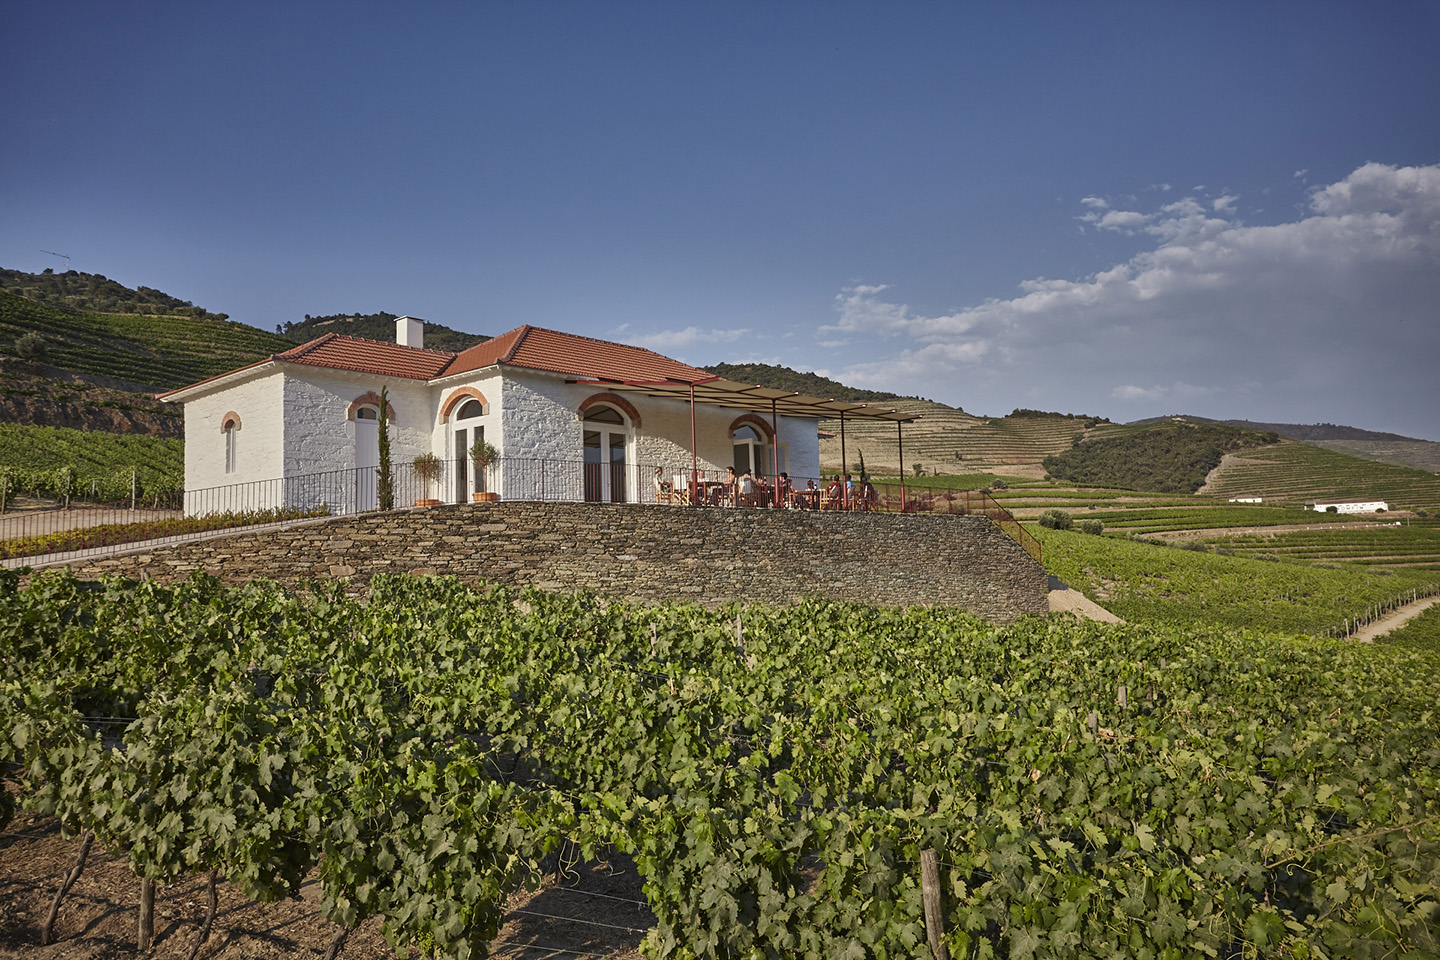 Echo House, surrounded by stunning vineyard scenery